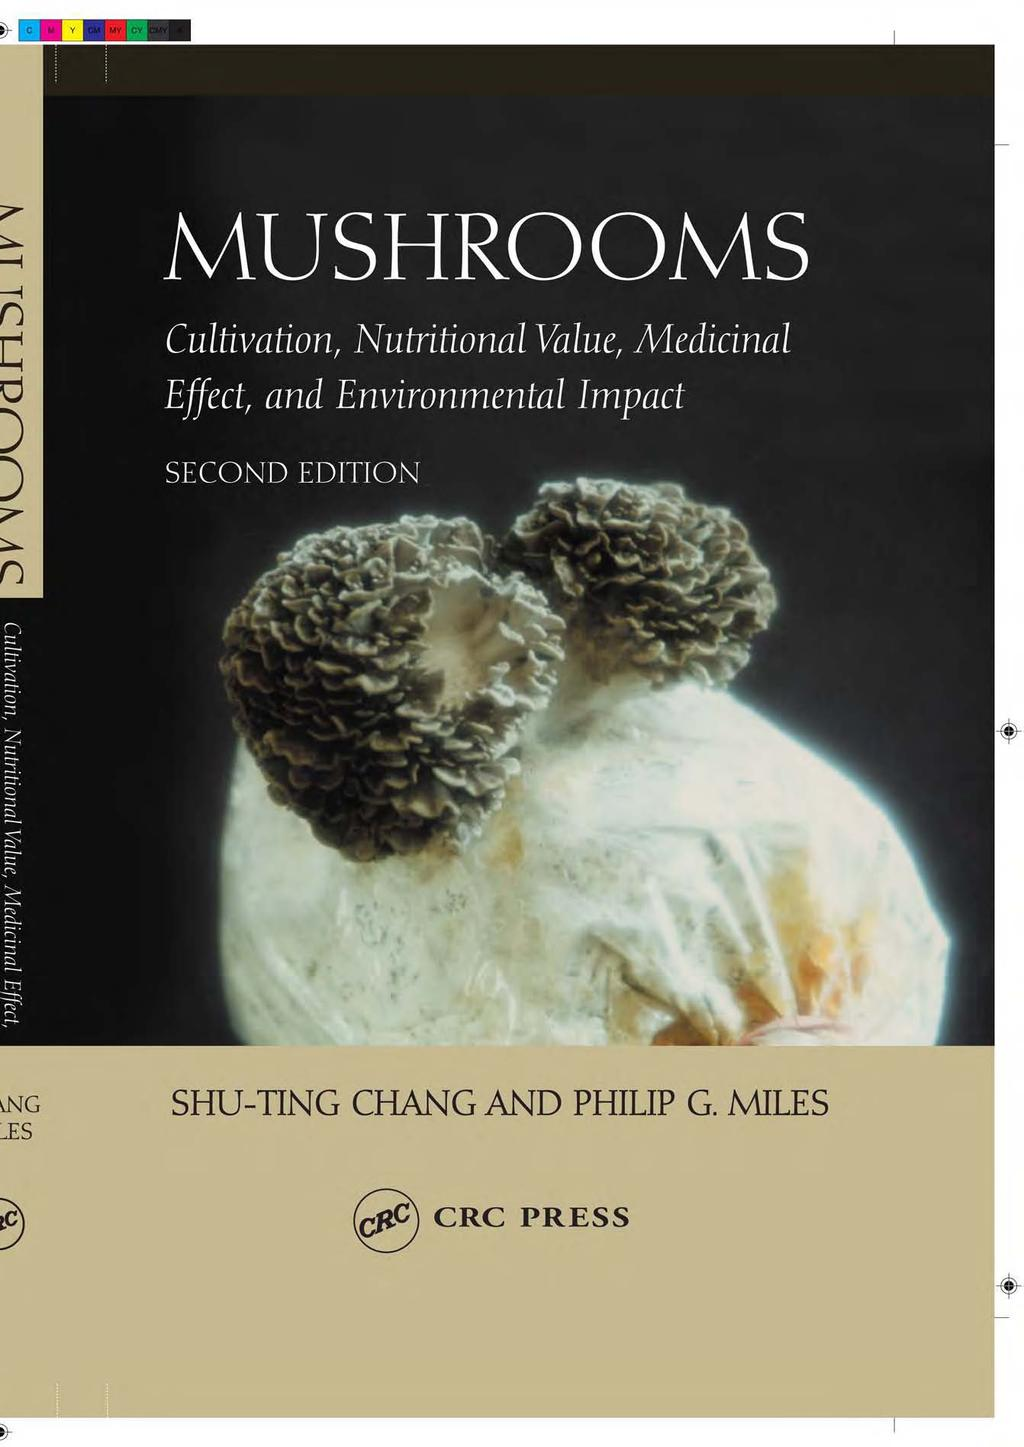 MUSHROOMS  Cultivation, Nutritional Value, Medicinal Effect, and